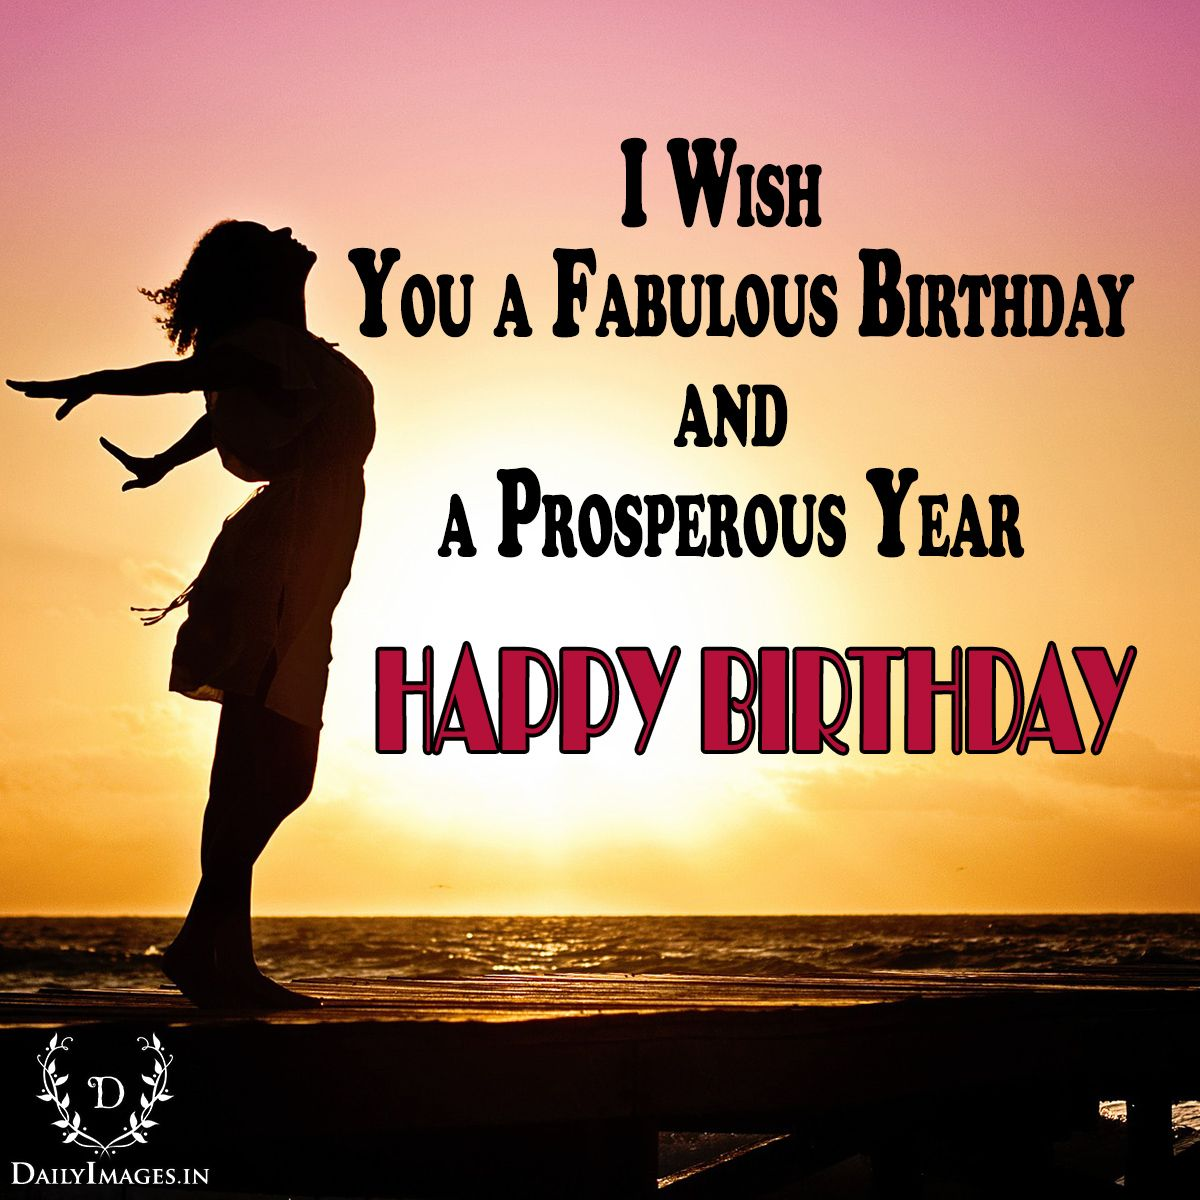 Pin On Birthday Images